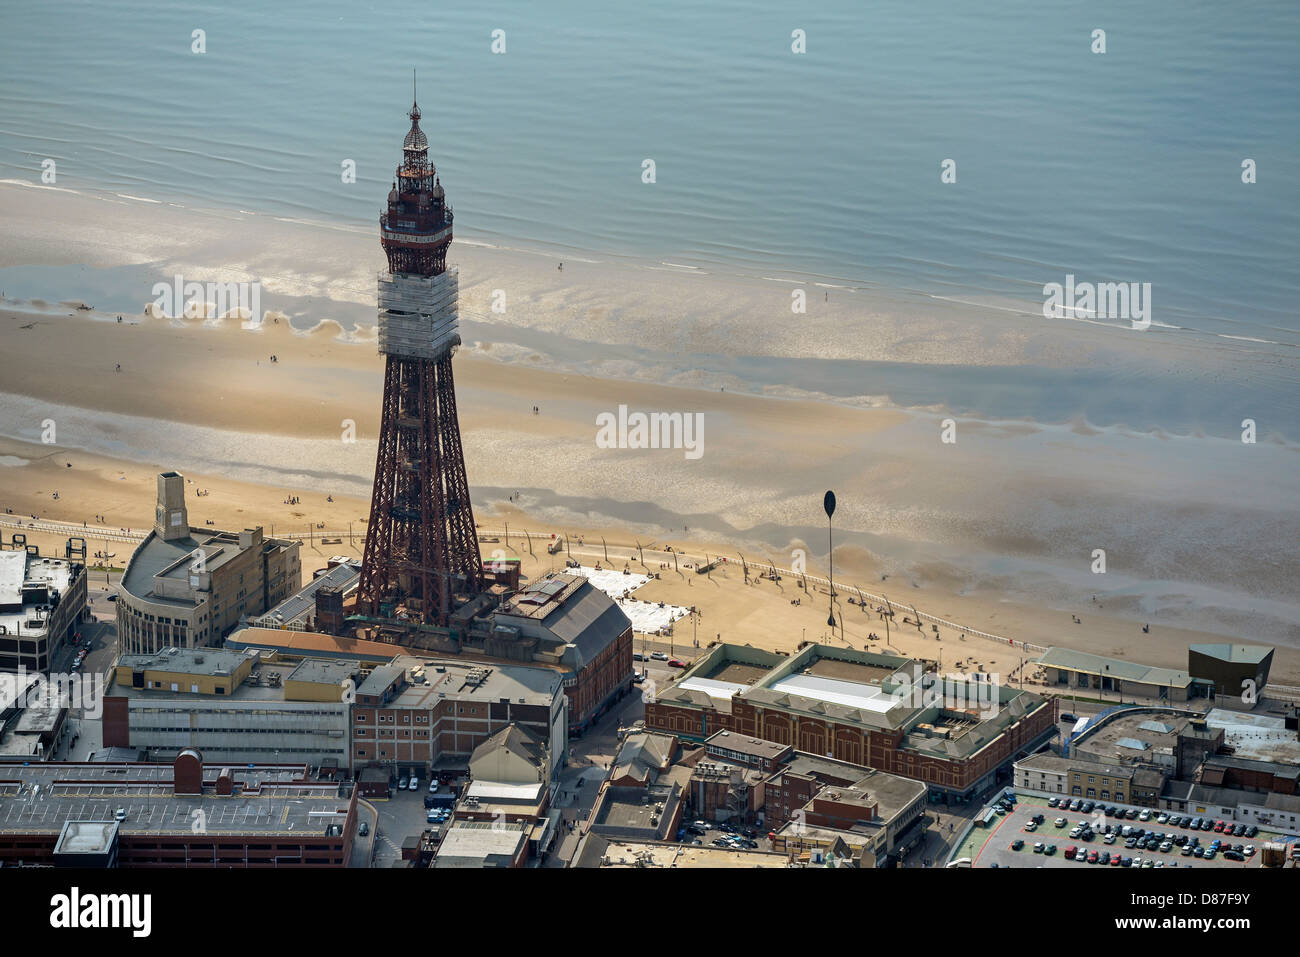 Aerial photograph of Blackpool Tower and Beach - Stock Image